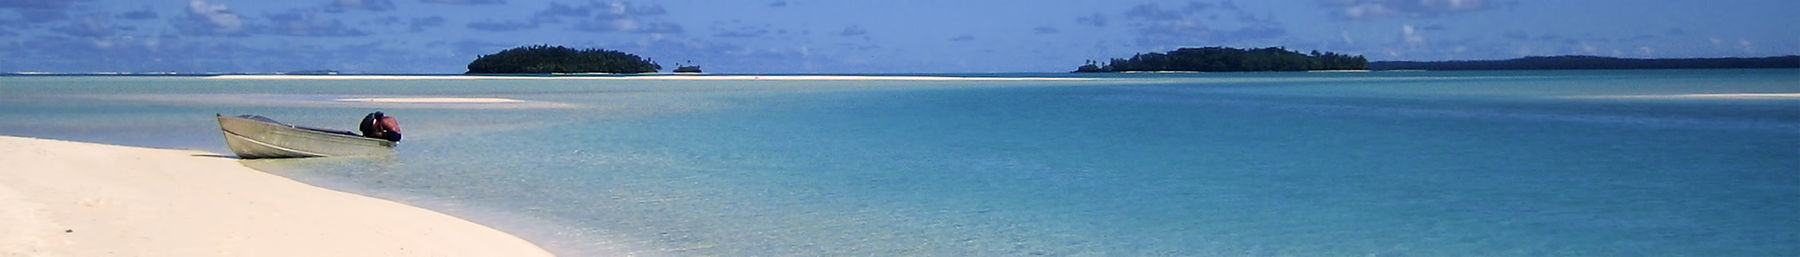 Cook Islands Beach banner.jpg